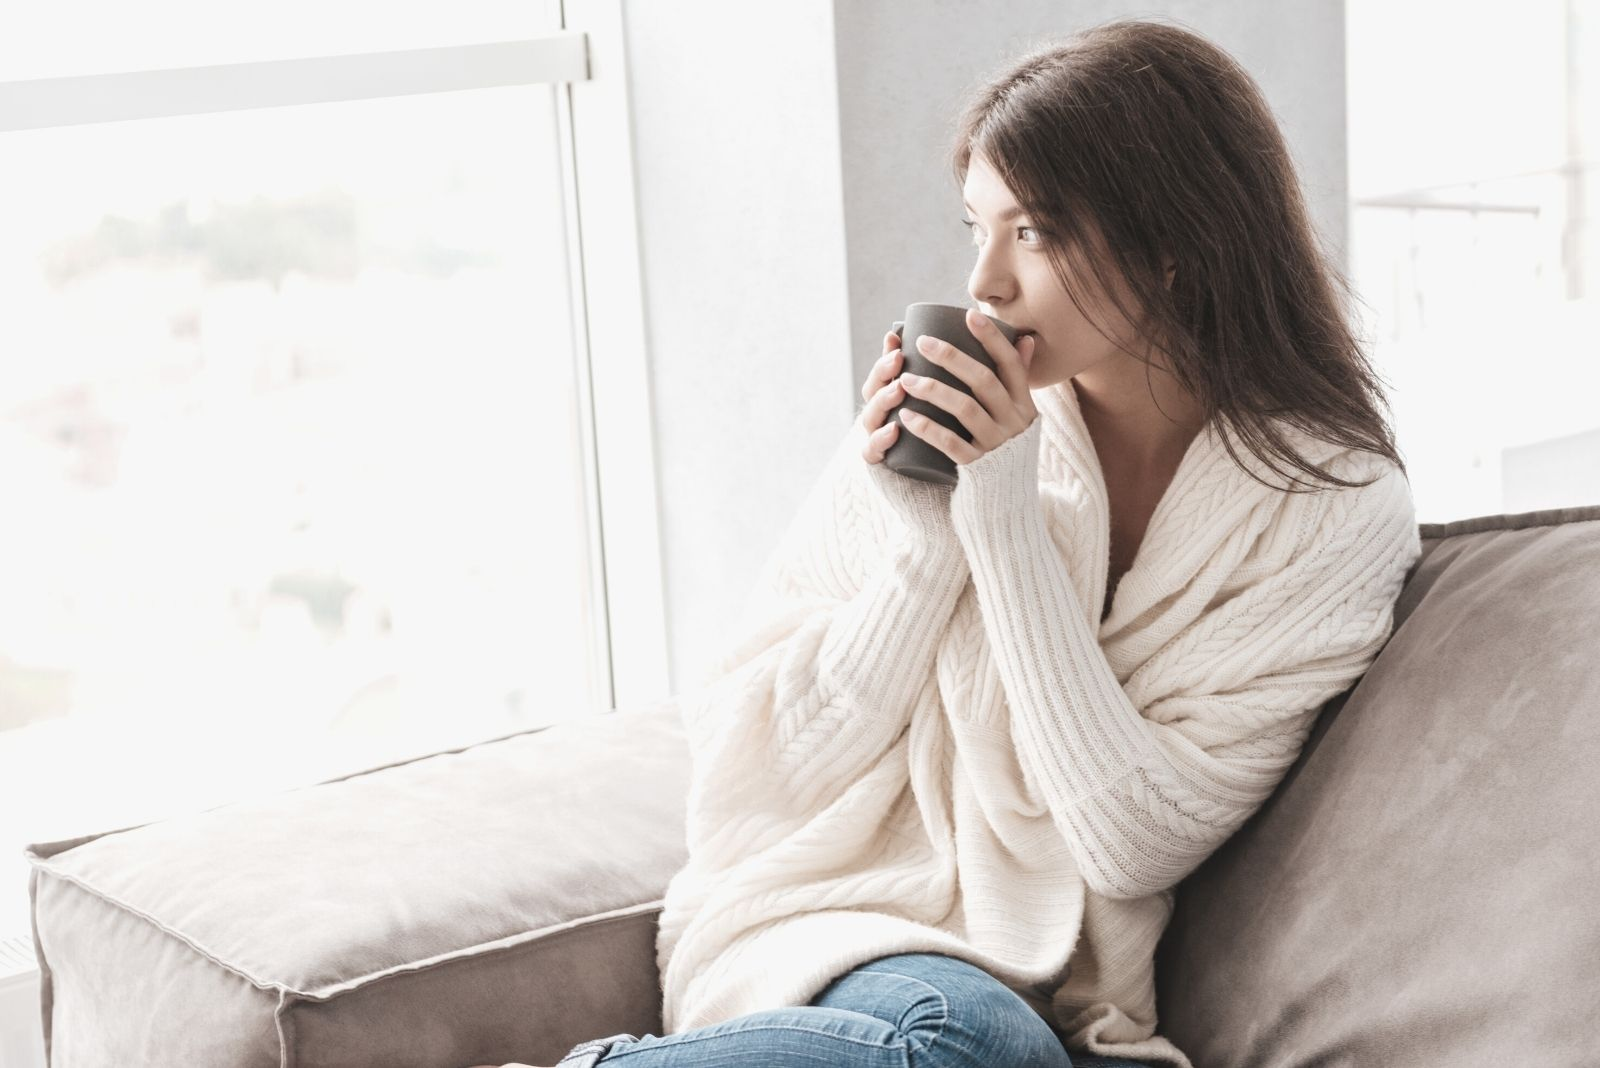 pensive woman drinking from a mug chilling in the sofa inside living room